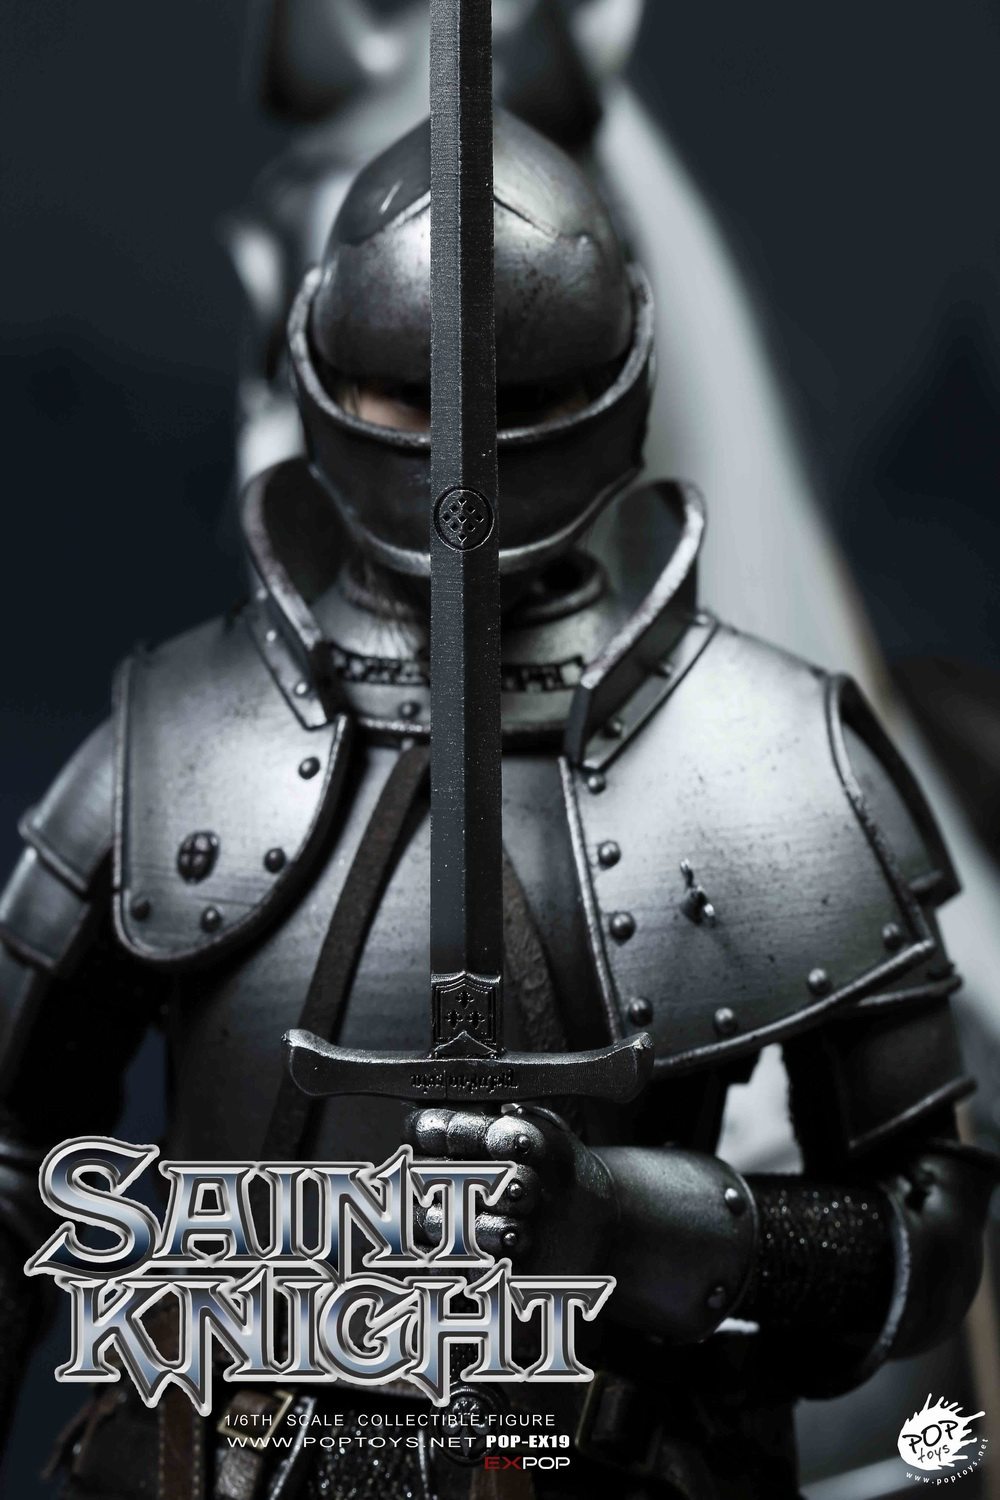 knight - NEW PRODUCT: POPTOYS New Products: 1/6 St. Knights - Assault Edition & Triumph Edition & Iron Armor (POP-EX19 ABC) 16390910